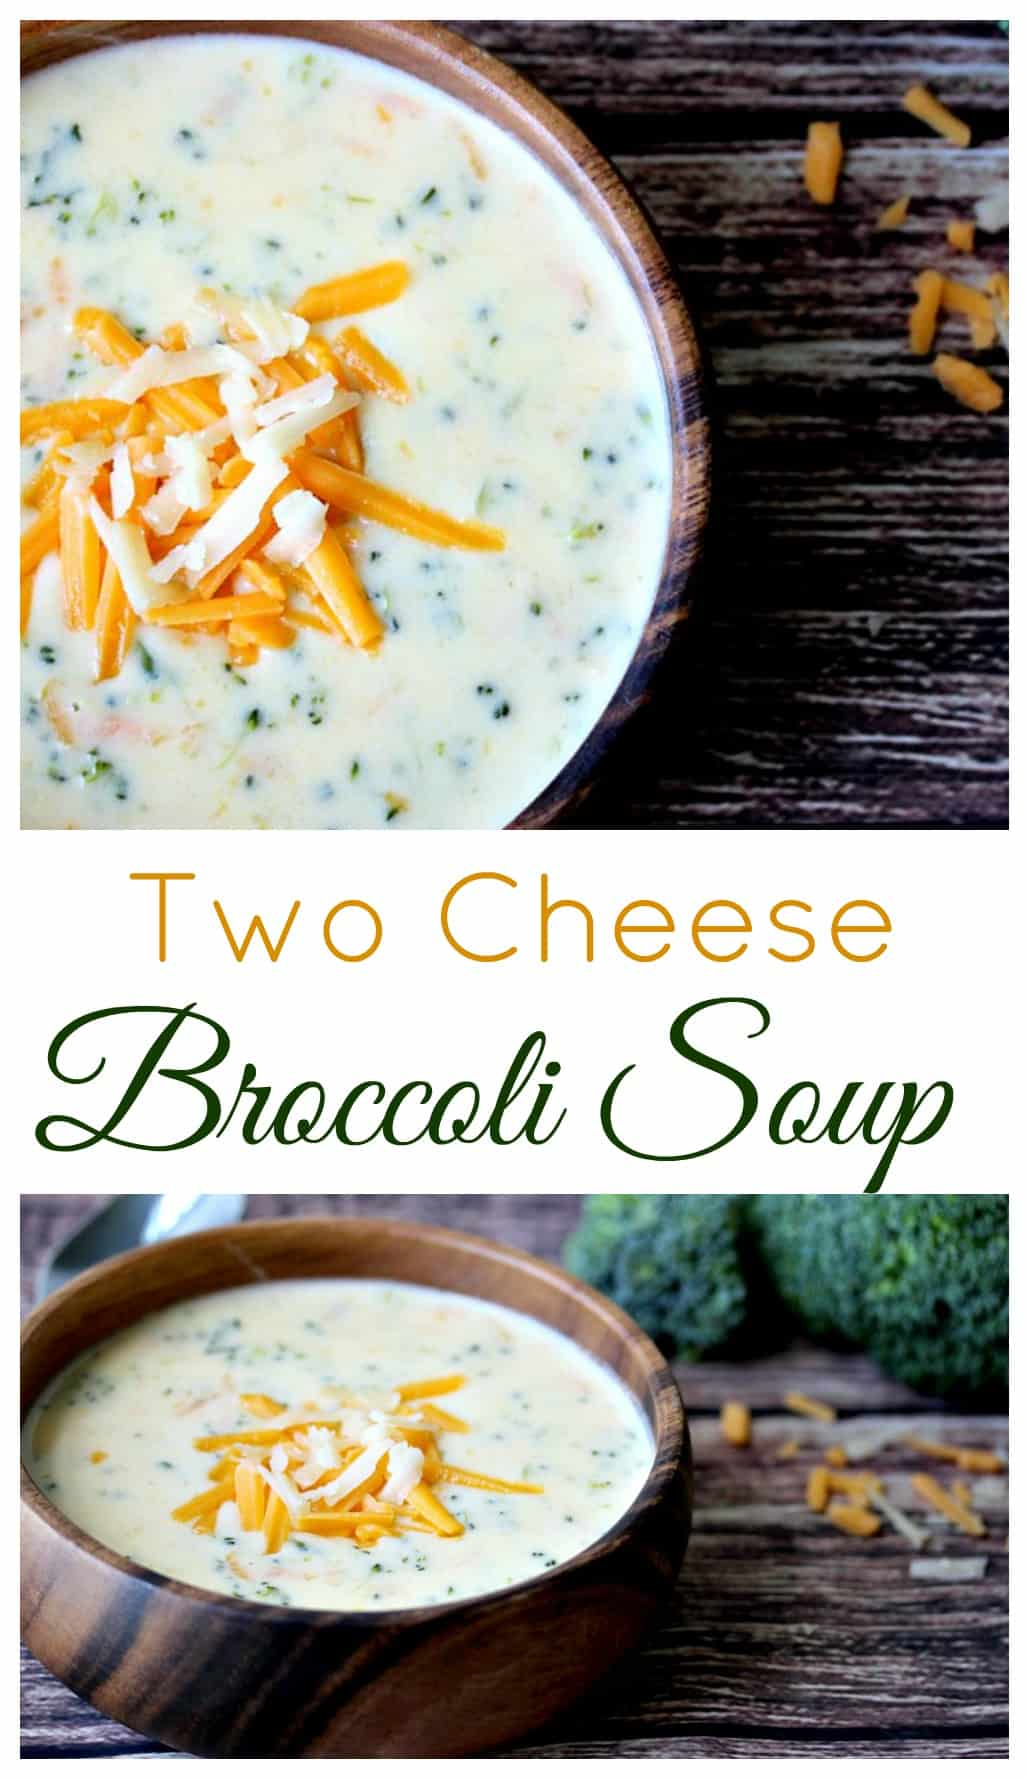 Two Cheese Broccoli Soup - an extra cheesy spin on a popular classic!